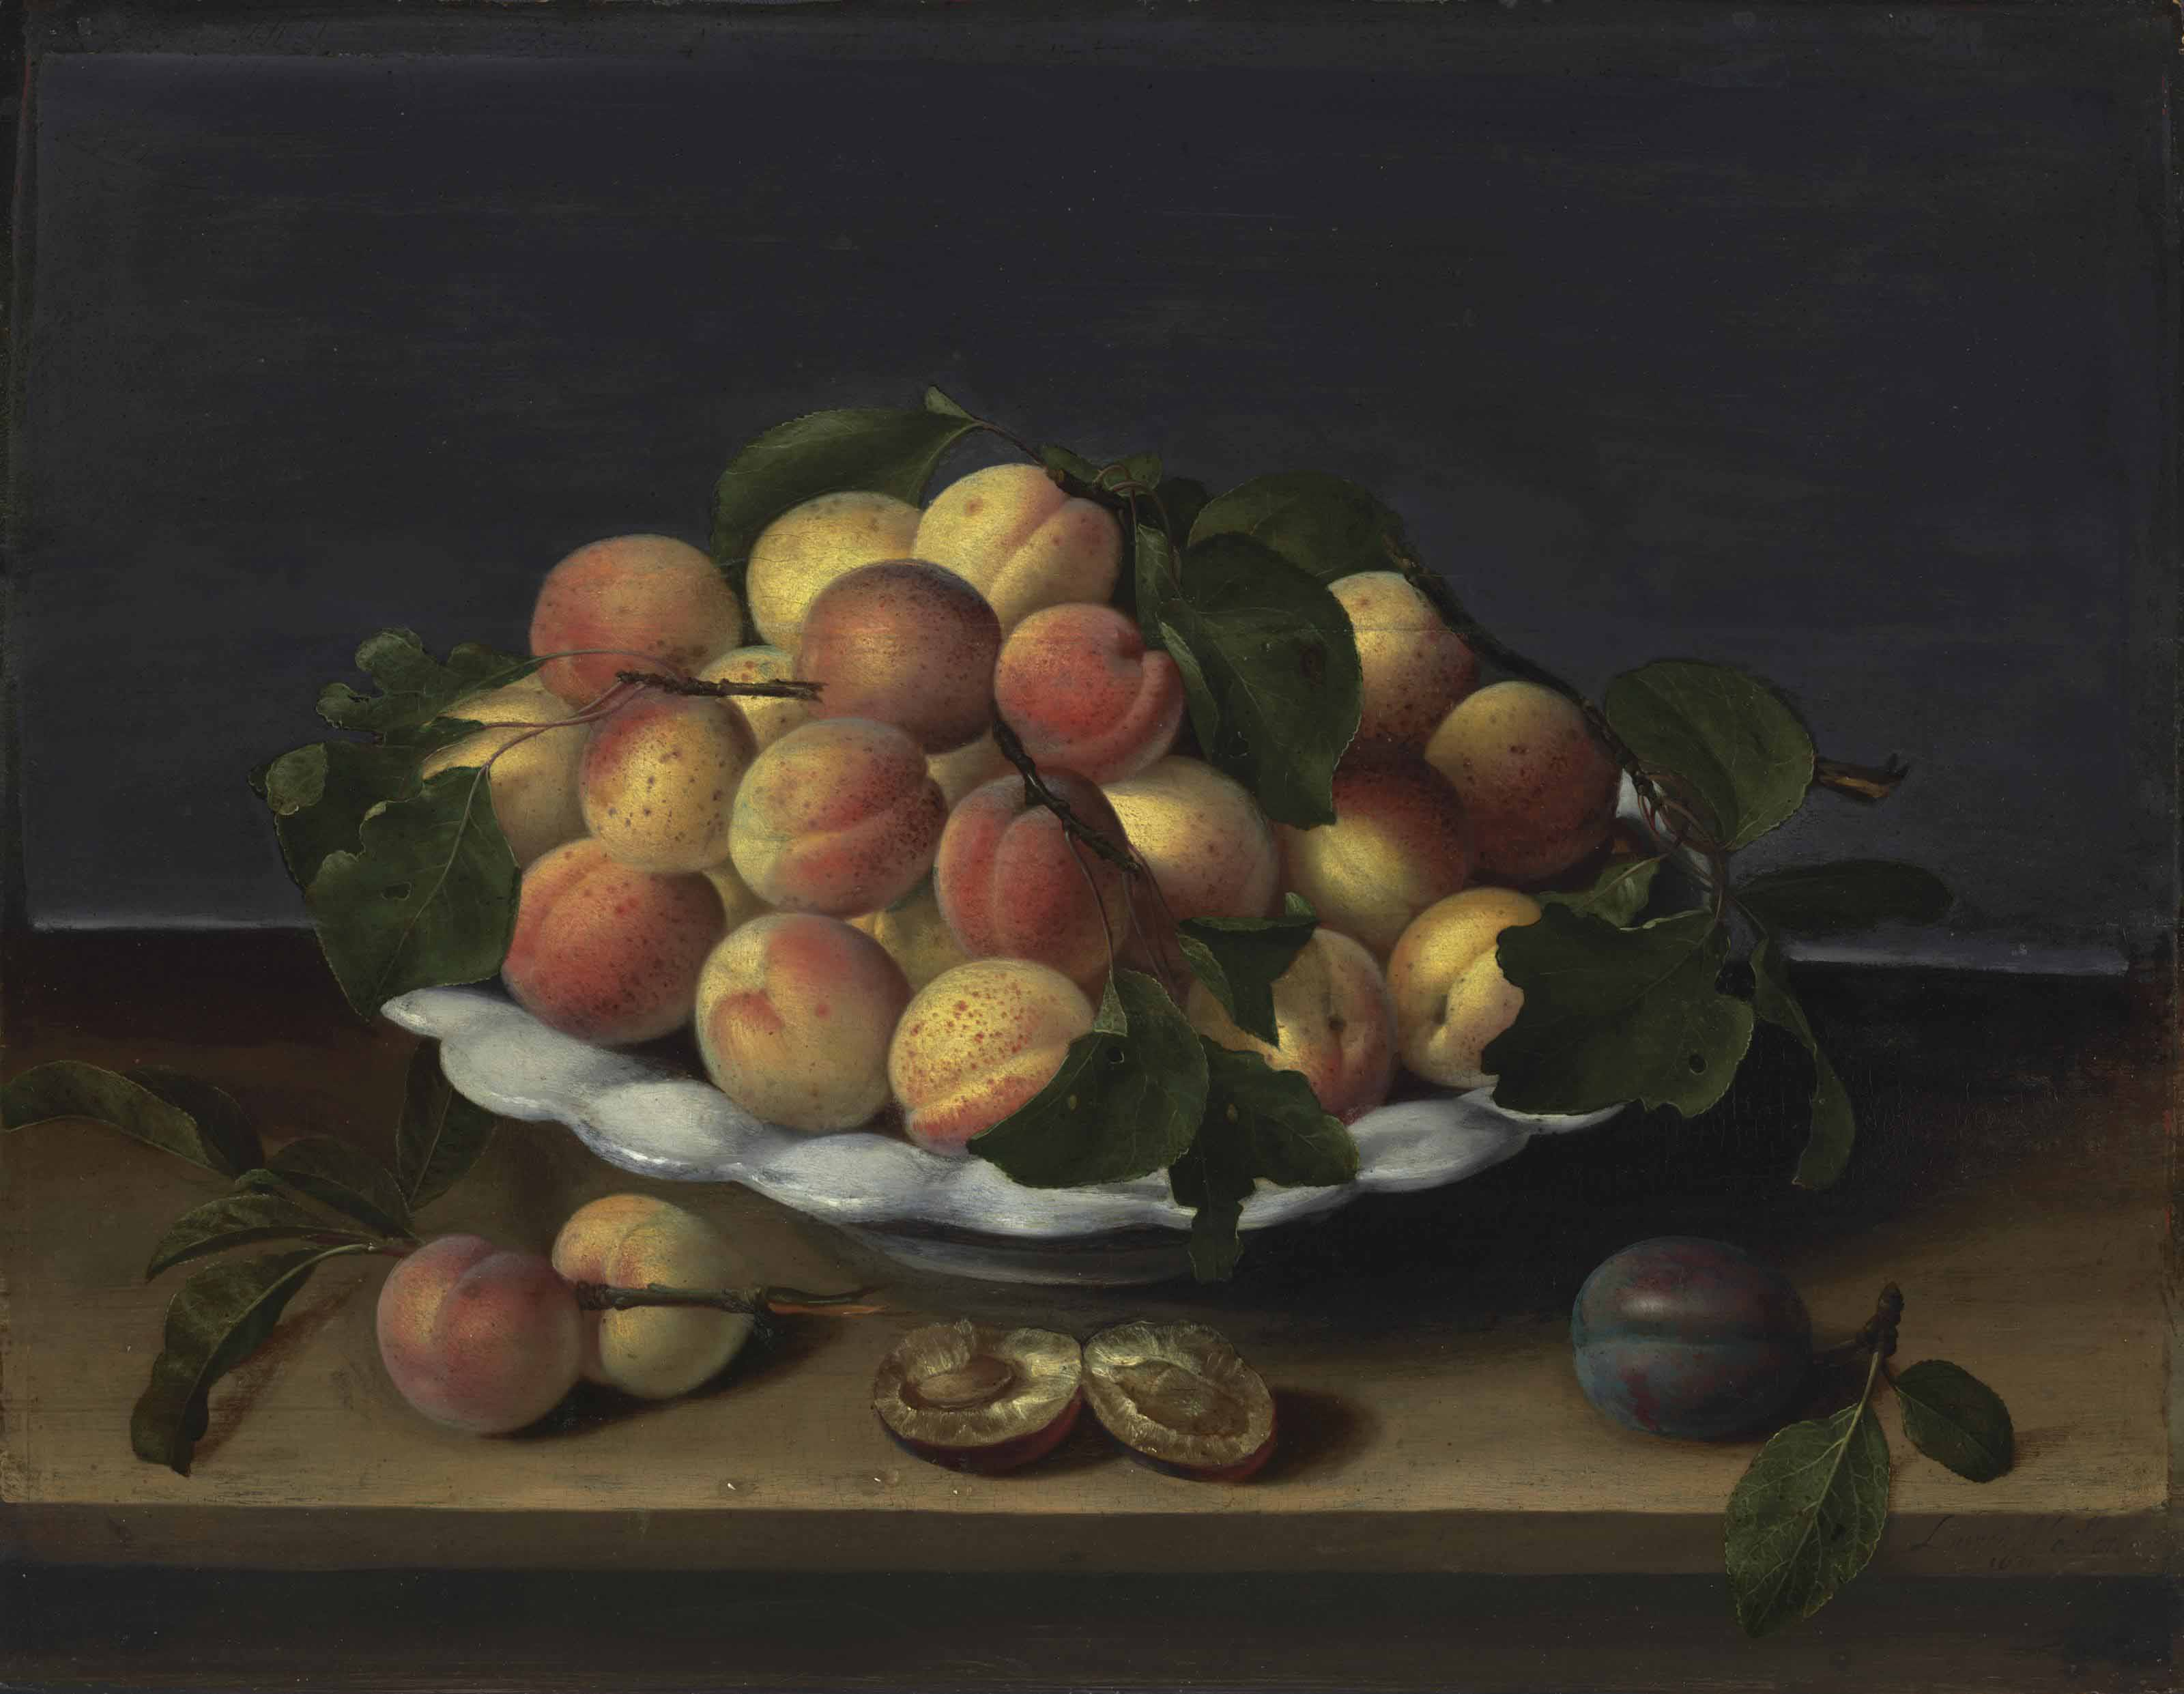 Apricots in a ceramic bowl, with plums on a stone ledge